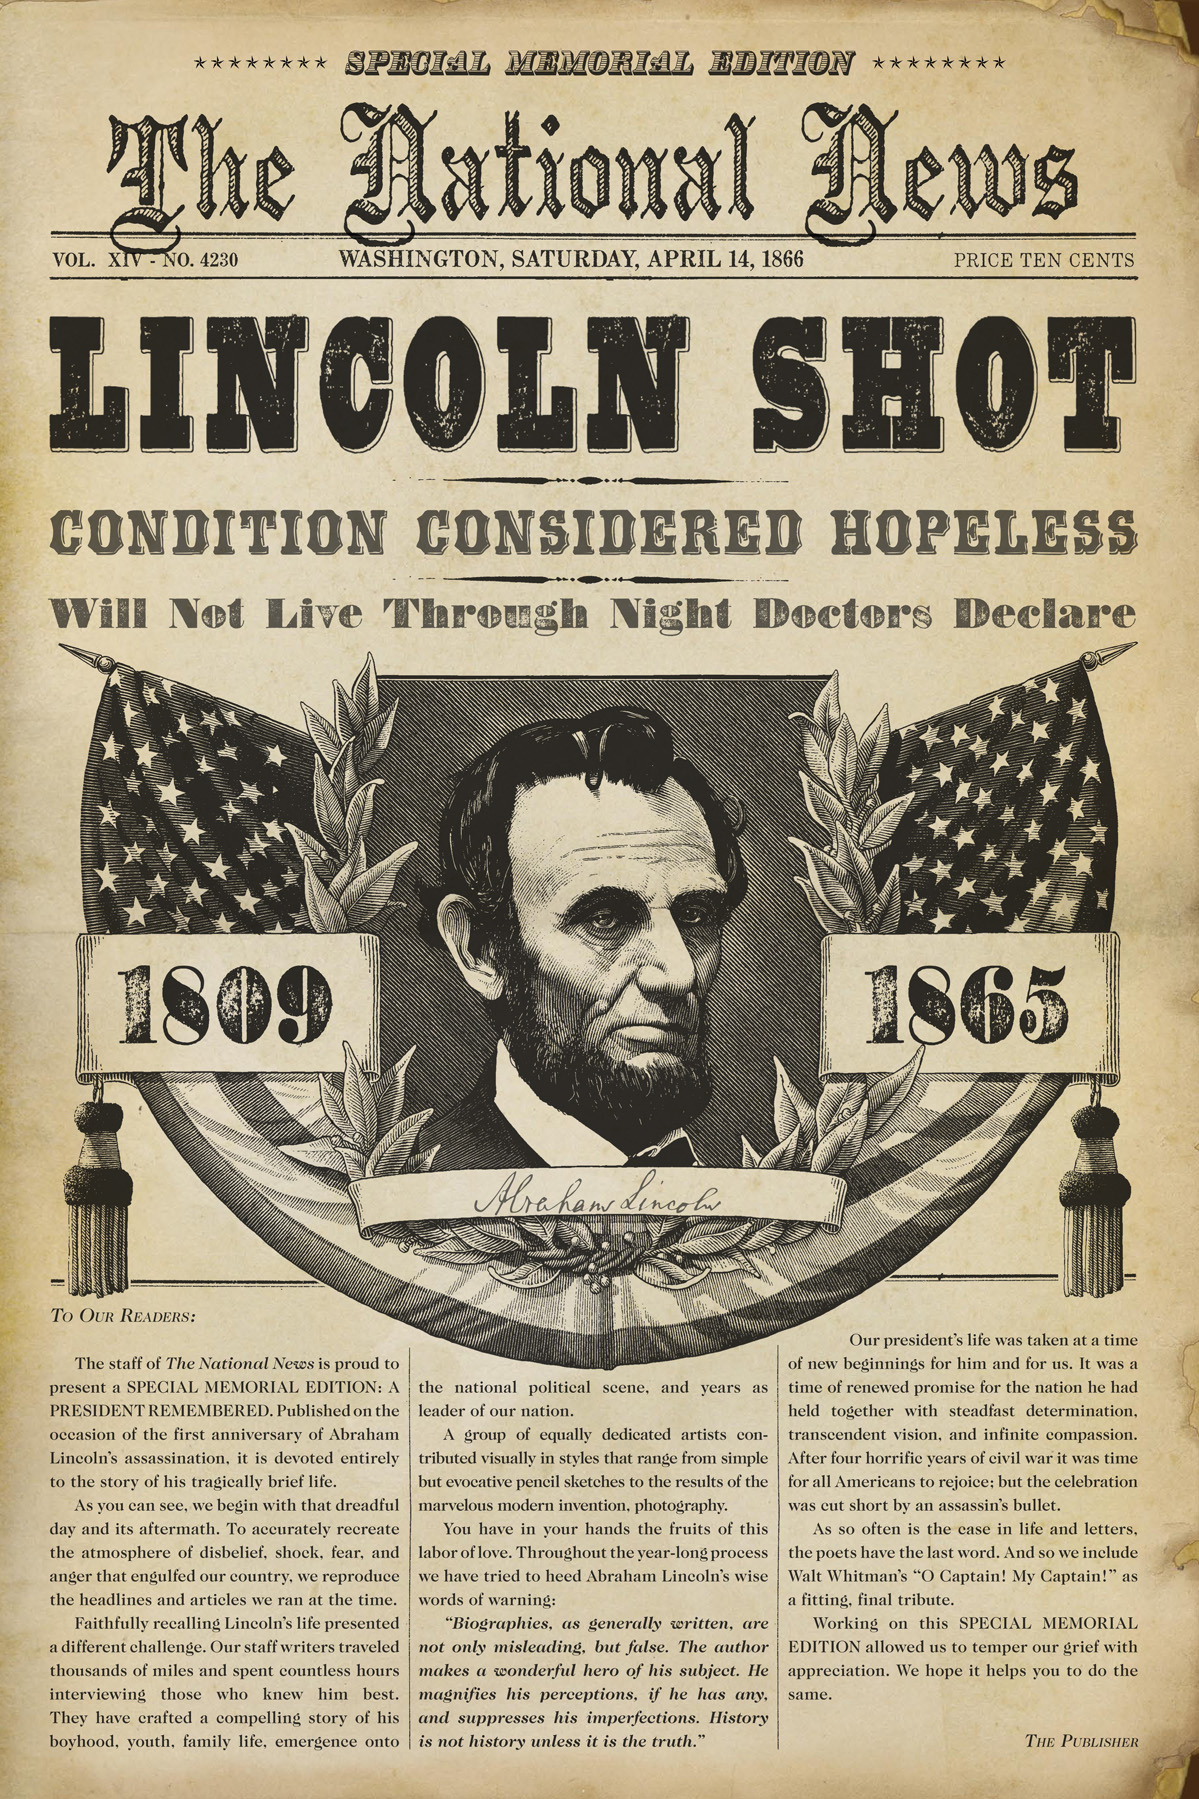 an introduction to all american tragedy lincoln assassination The lincoln assassination, 150 years later a century-and-a-half ago,the horrors of the civil war gave way to another horror: the murder of an american.